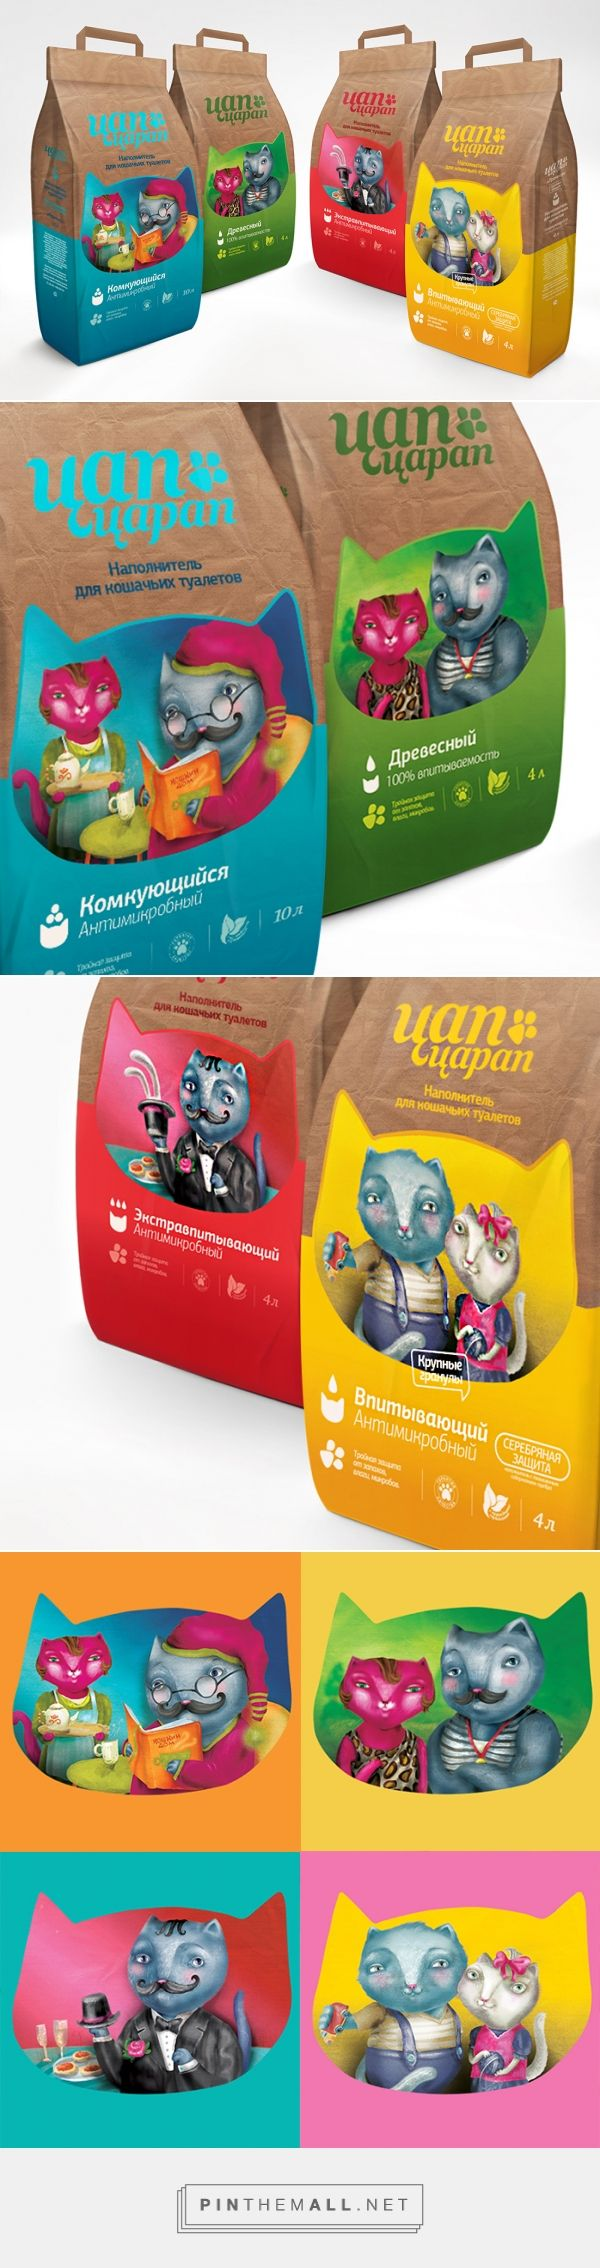 Цап-Царап via Dochery Branding curated by Packaging Diva PD. This is so cute. Why don't we see cat food packaging like this here?